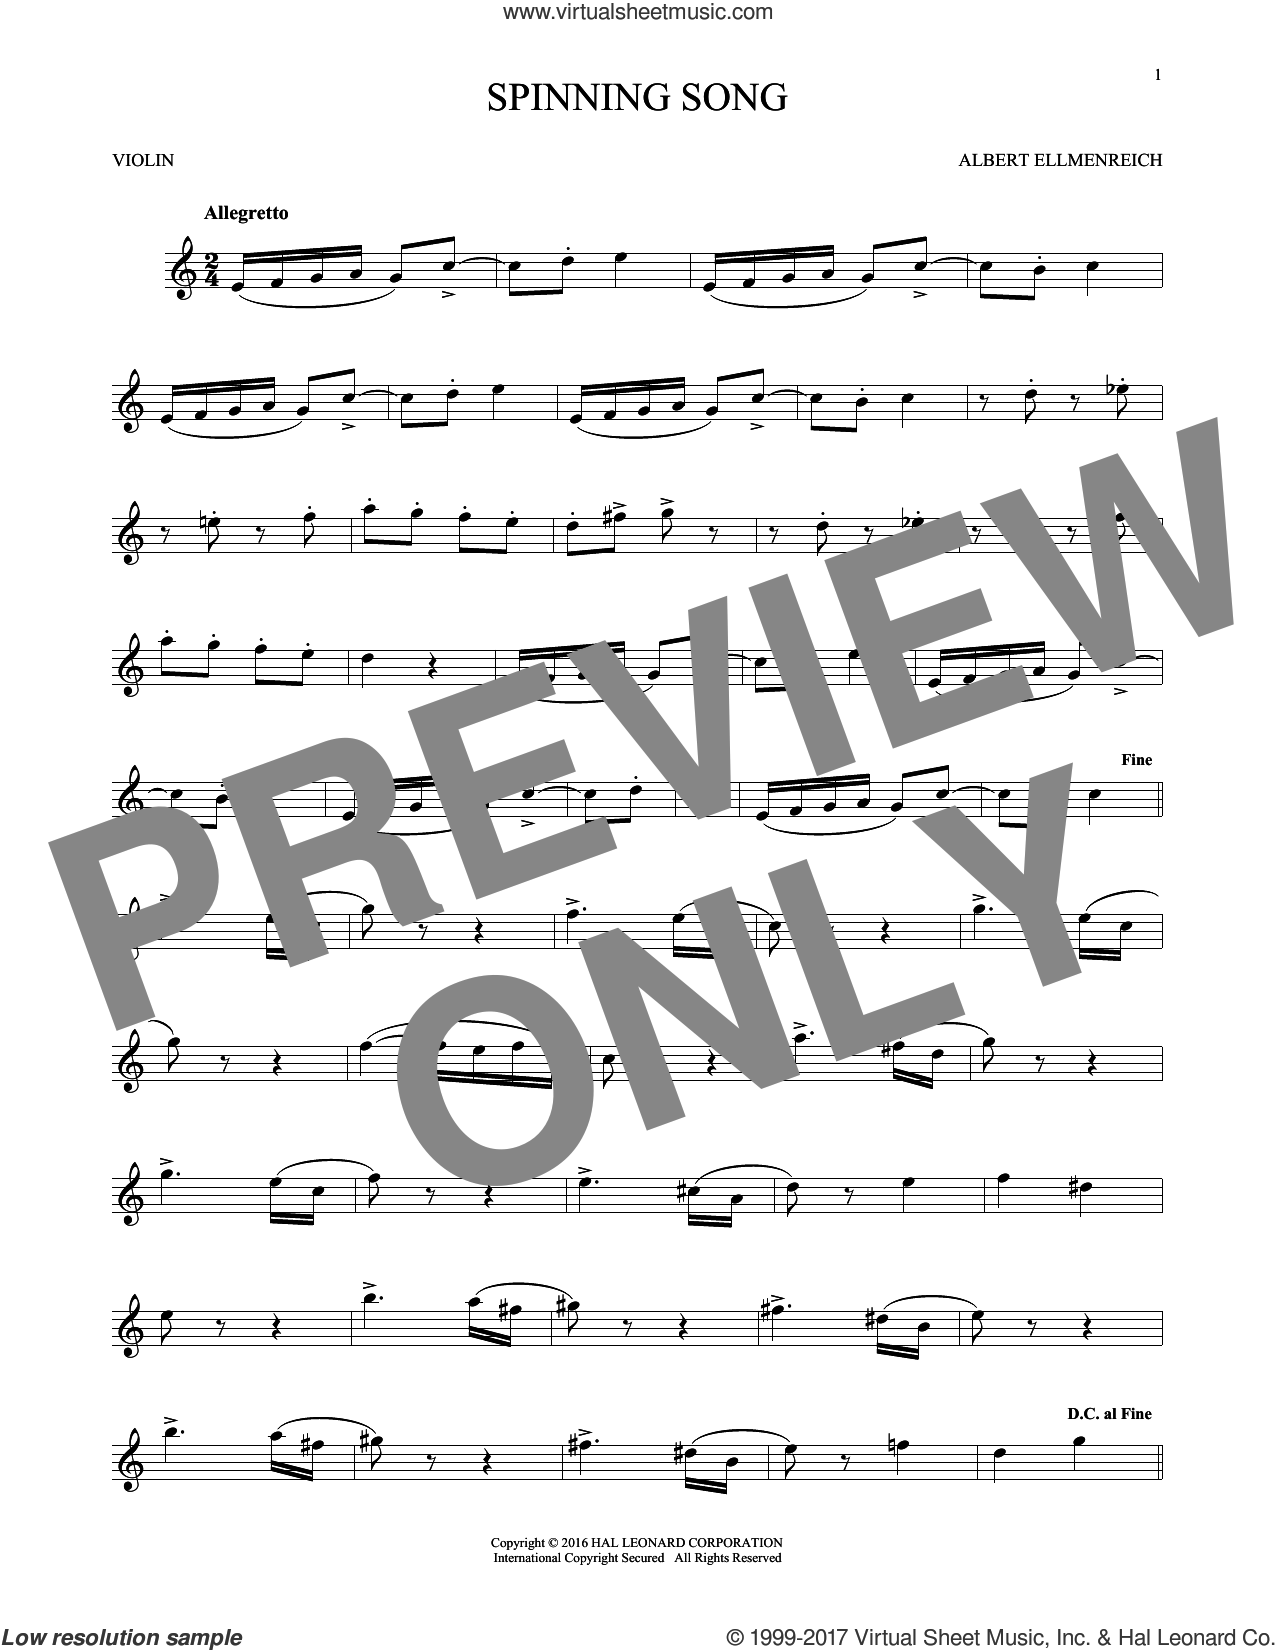 Spinning Song sheet music for violin solo by Albert Ellmenreich, classical score, intermediate skill level